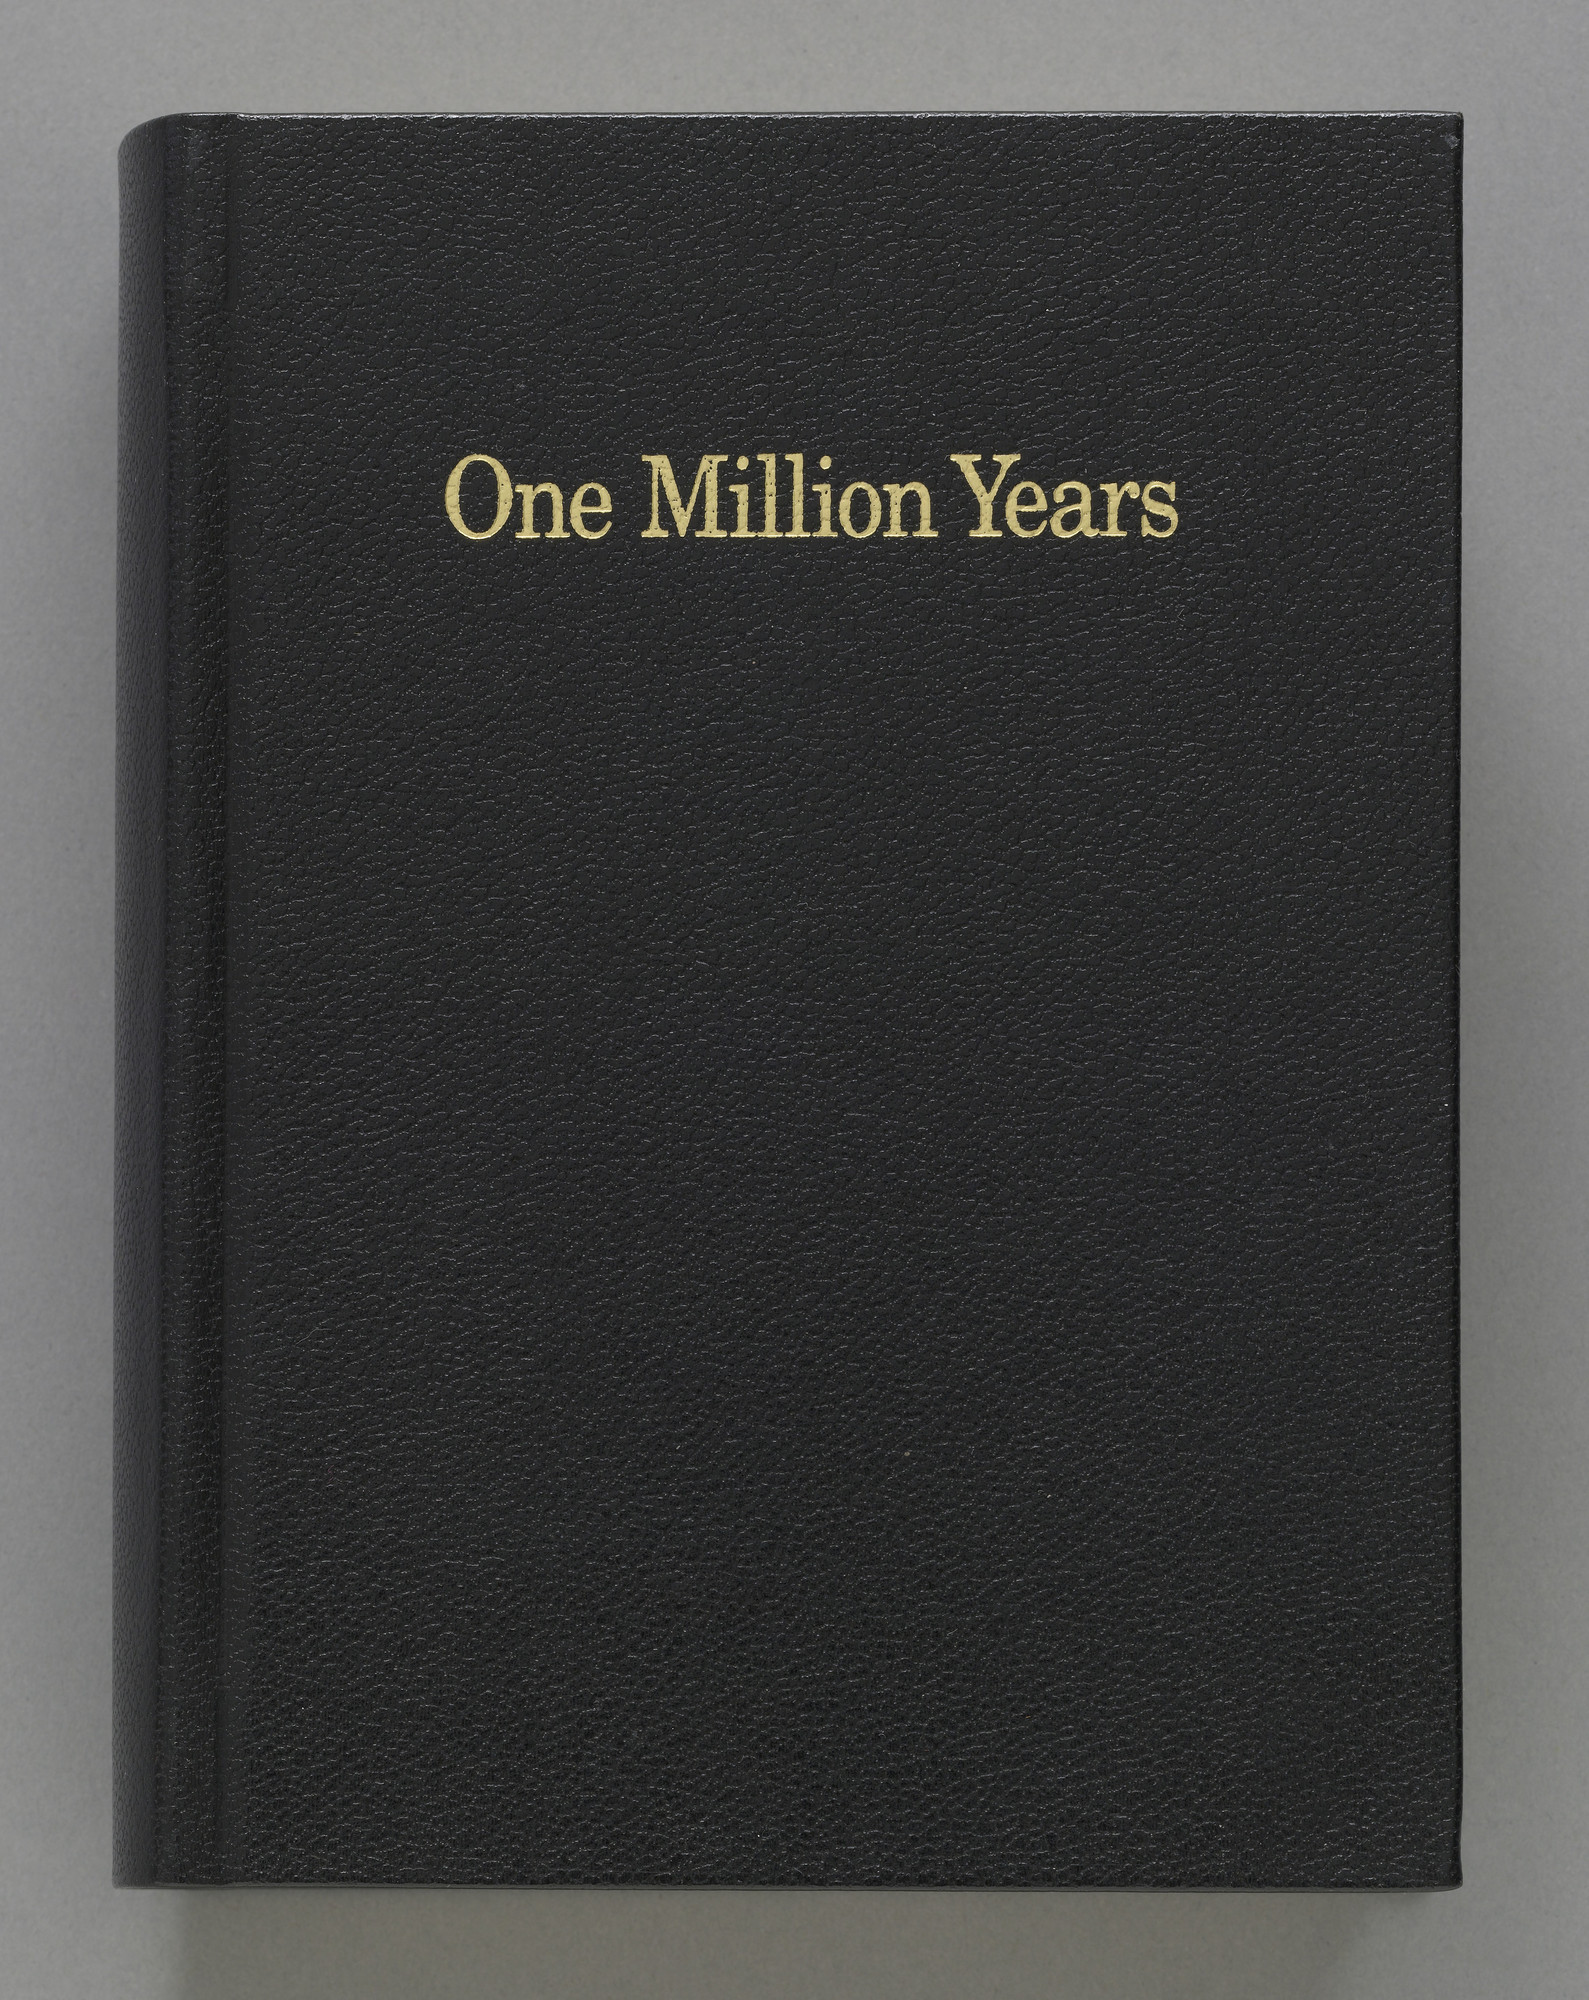 On Kawara. One Million Years. 1999